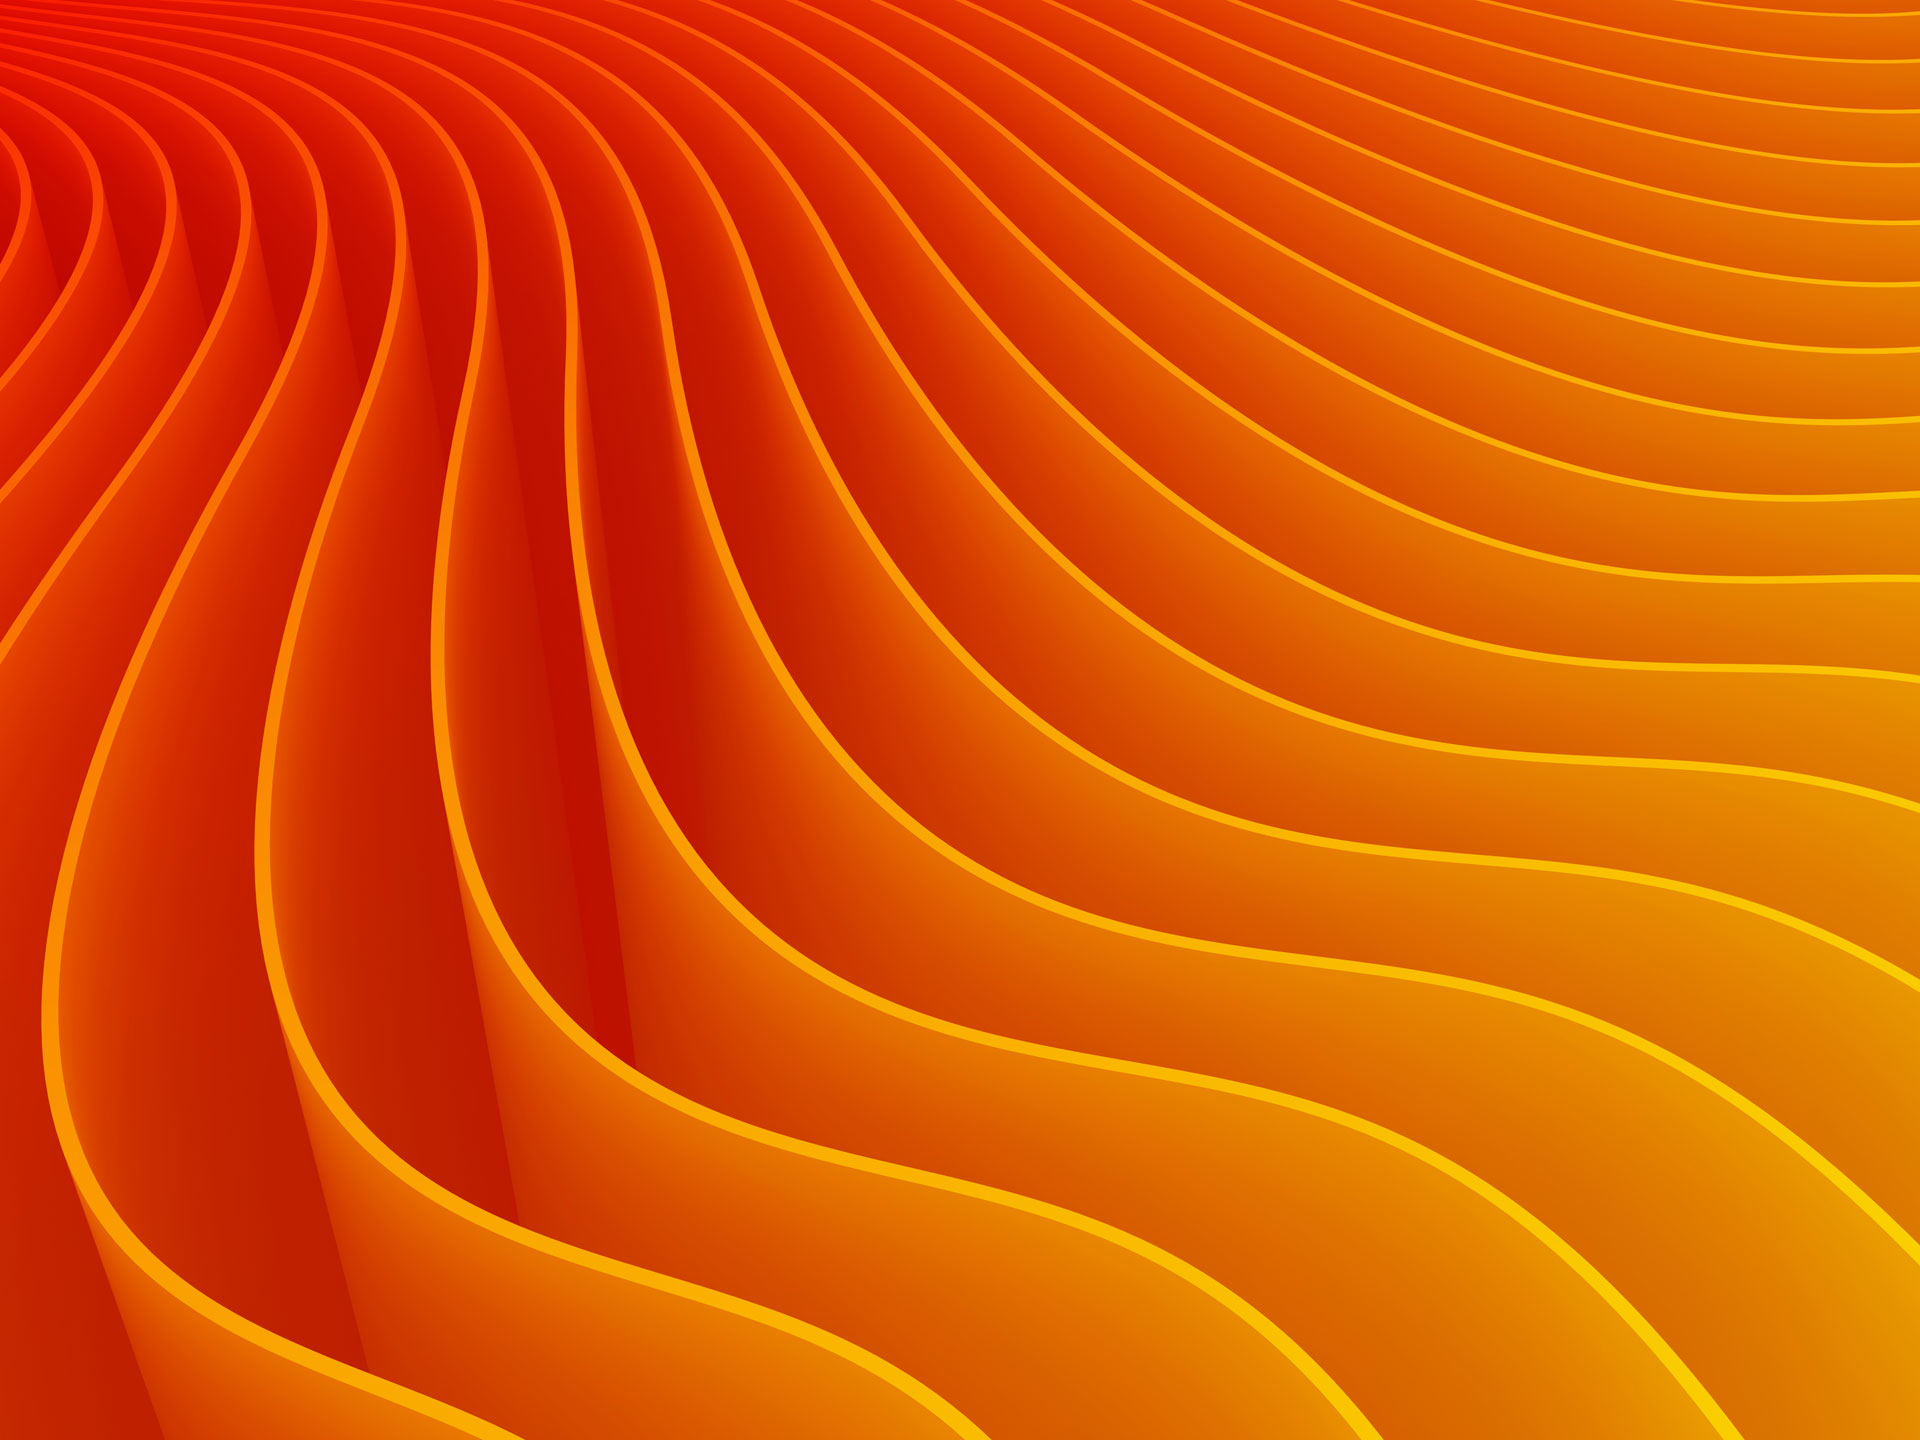 slide-waves-orange